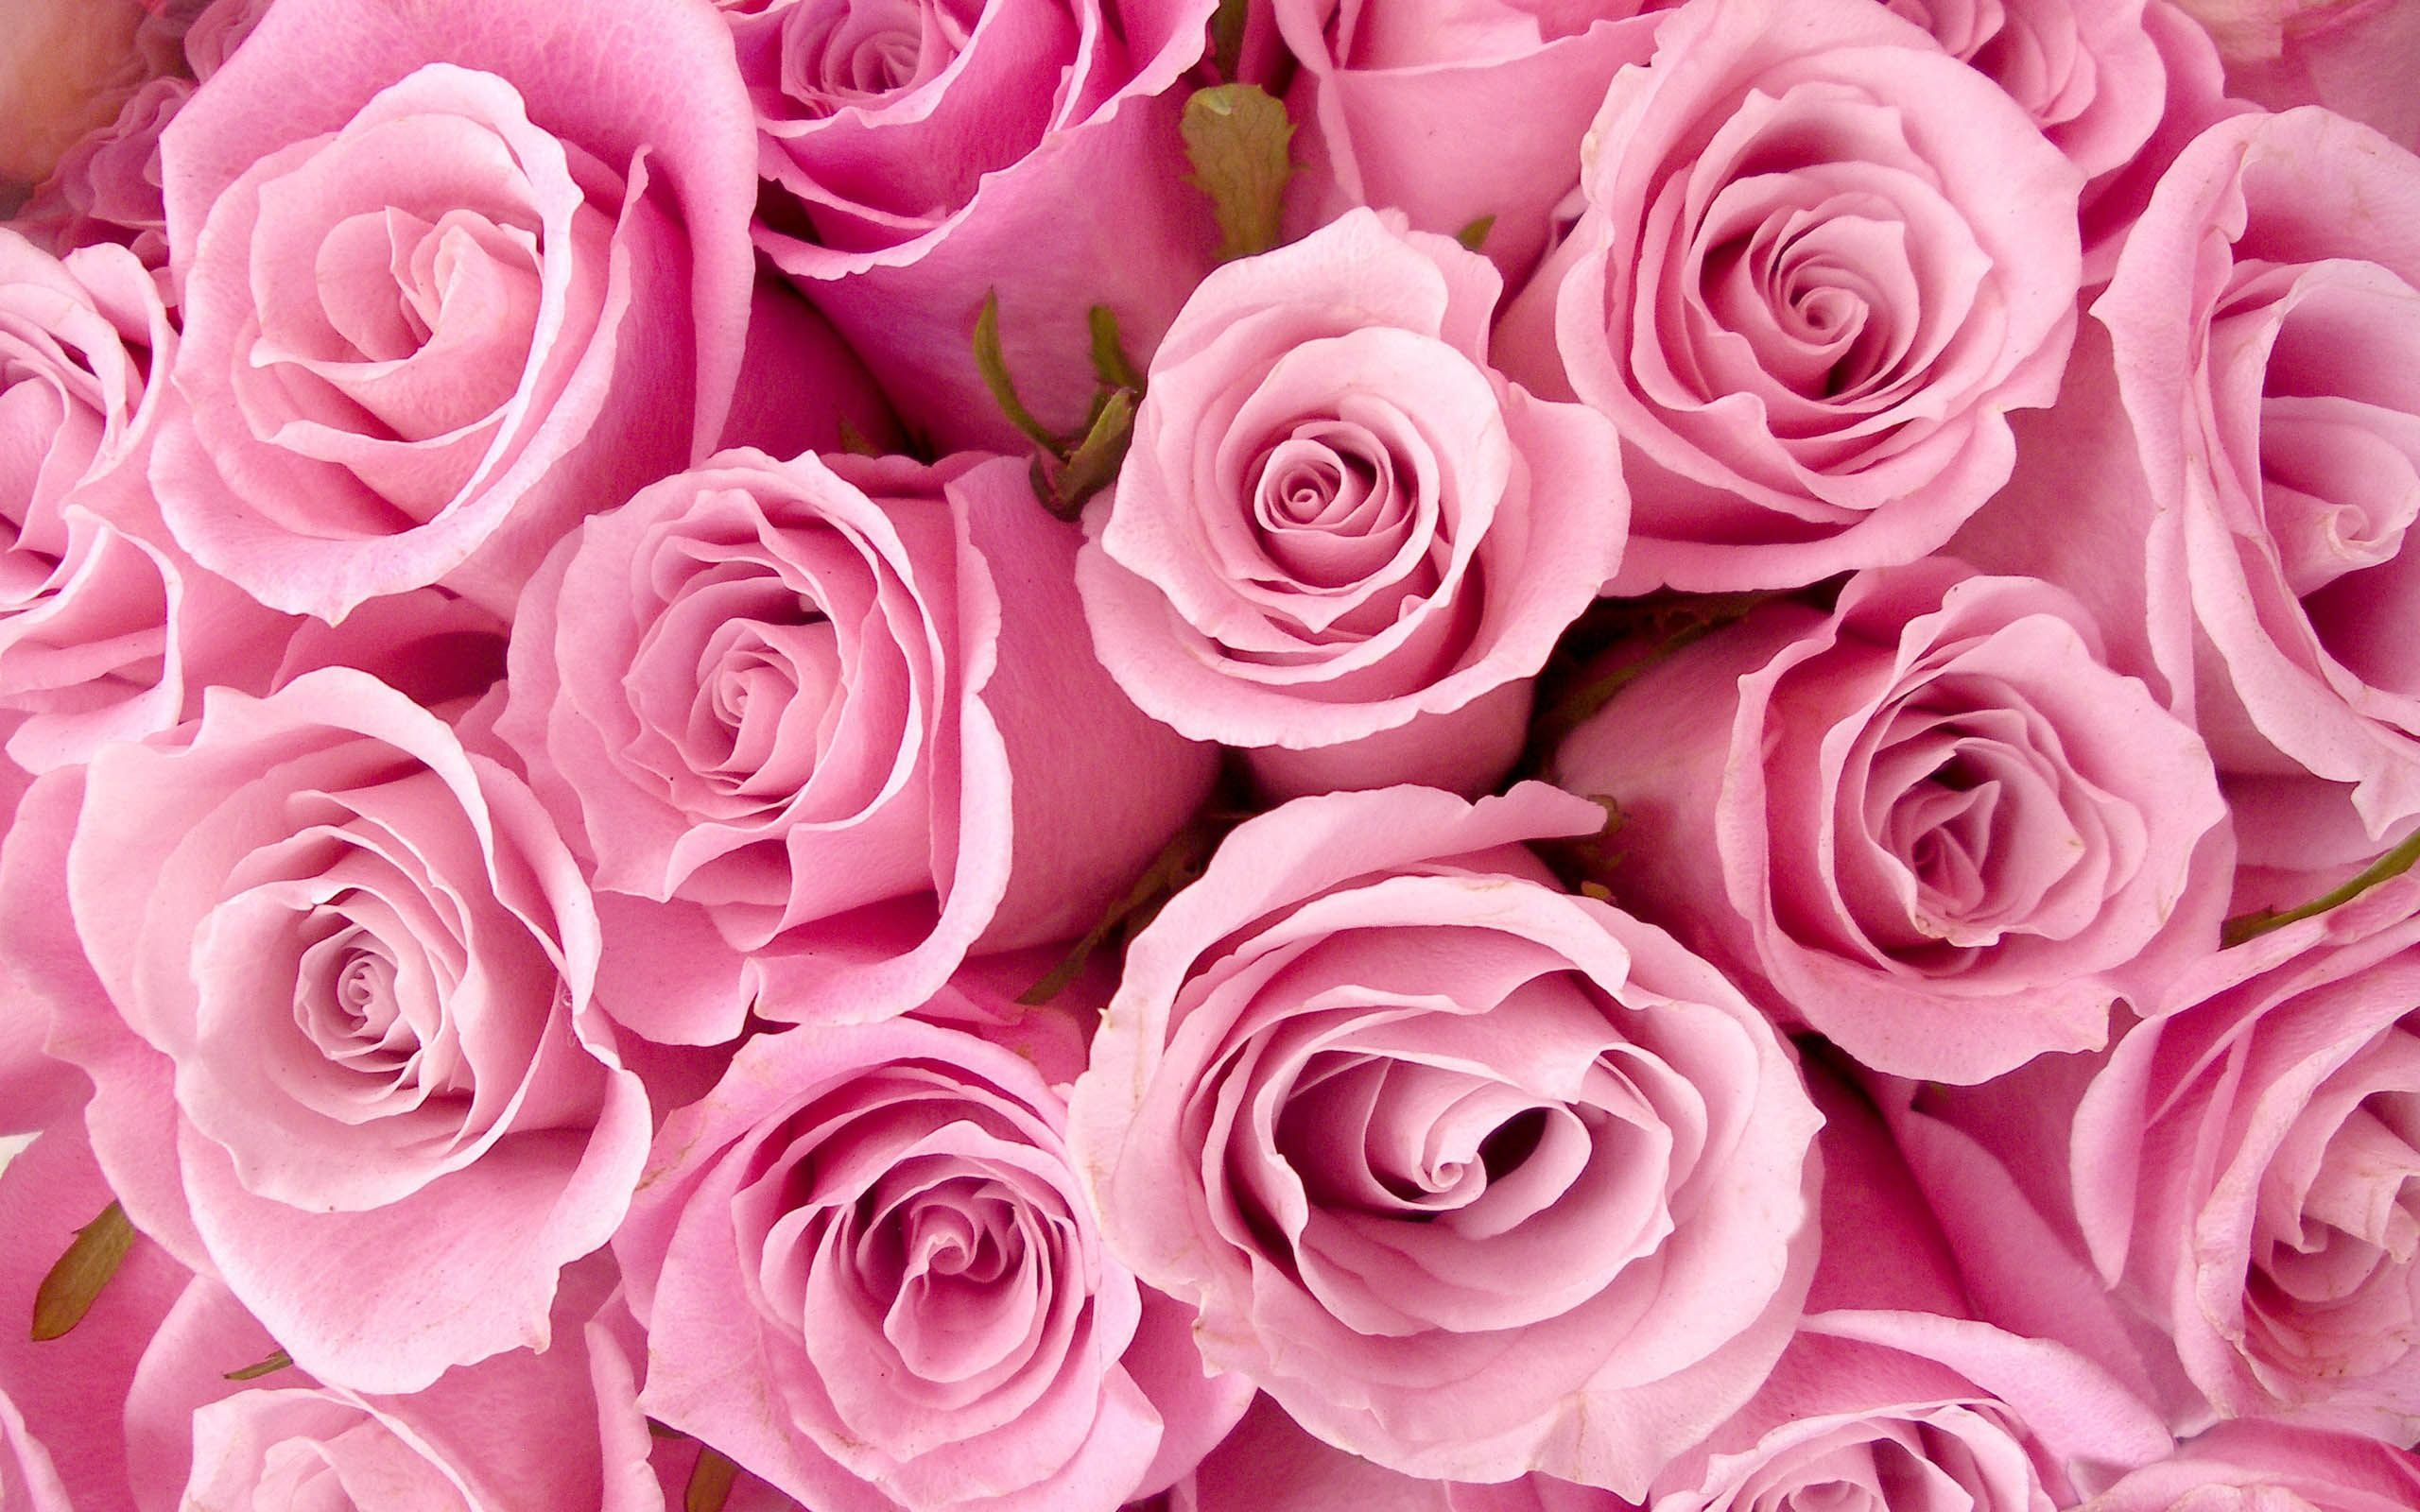 Rose flower wallpaper tumblr 17819 2560x1600 px hdwallsource rose flower wallpaper tumblr 17819 2560x1600 px hdwallsource mightylinksfo